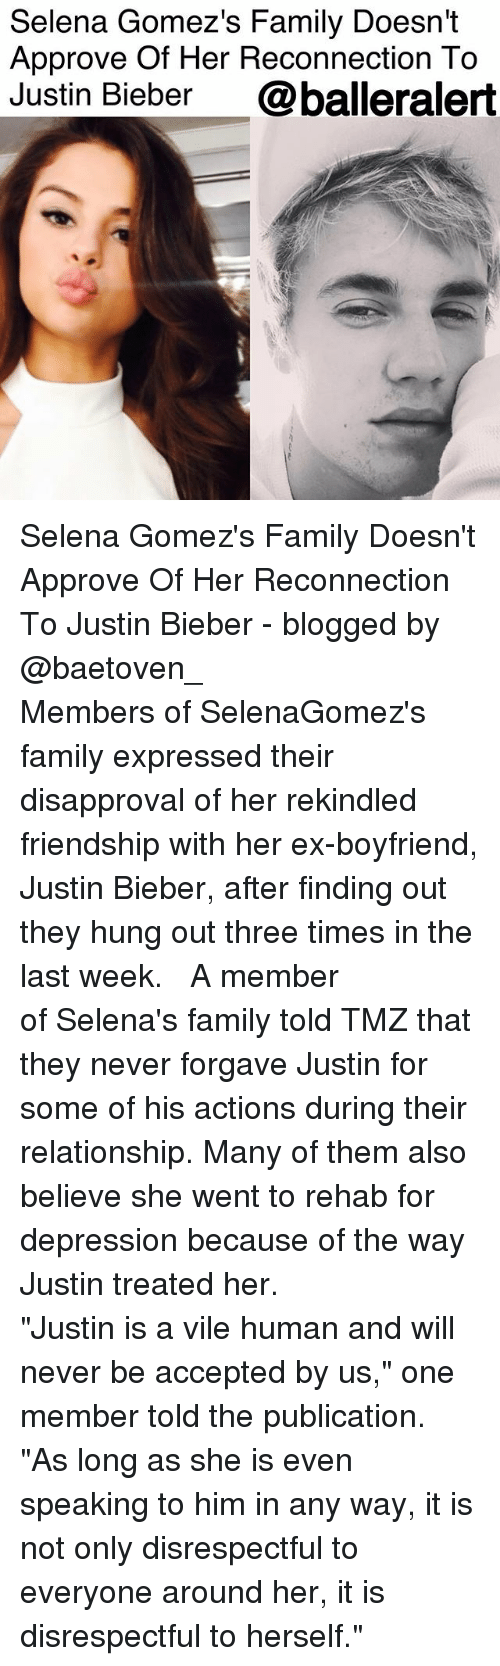 """Family, Justin Bieber, and Memes: Selena Gomez's Family Doesn't  Approve Of Her Reconnection To  Justin Bieber @balleralert Selena Gomez's Family Doesn't Approve Of Her Reconnection To Justin Bieber - blogged by @baetoven_ ⠀⠀⠀⠀⠀⠀⠀ ⠀⠀⠀⠀⠀⠀⠀ Members of SelenaGomez's family expressed their disapproval of her rekindled friendship with her ex-boyfriend, Justin Bieber, after finding out they hung out three times in the last week. ⠀⠀⠀⠀⠀⠀⠀ ⠀⠀⠀⠀⠀⠀⠀ A member of Selena's family told TMZ that they never forgave Justin for some of his actions during their relationship. Many of them also believe she went to rehab for depression because of the way Justin treated her. ⠀⠀⠀⠀⠀⠀⠀ ⠀⠀⠀⠀⠀⠀⠀ """"Justin is a vile human and will never be accepted by us,"""" one member told the publication. """"As long as she is even speaking to him in any way, it is not only disrespectful to everyone around her, it is disrespectful to herself."""" ⠀⠀⠀⠀⠀⠀⠀"""